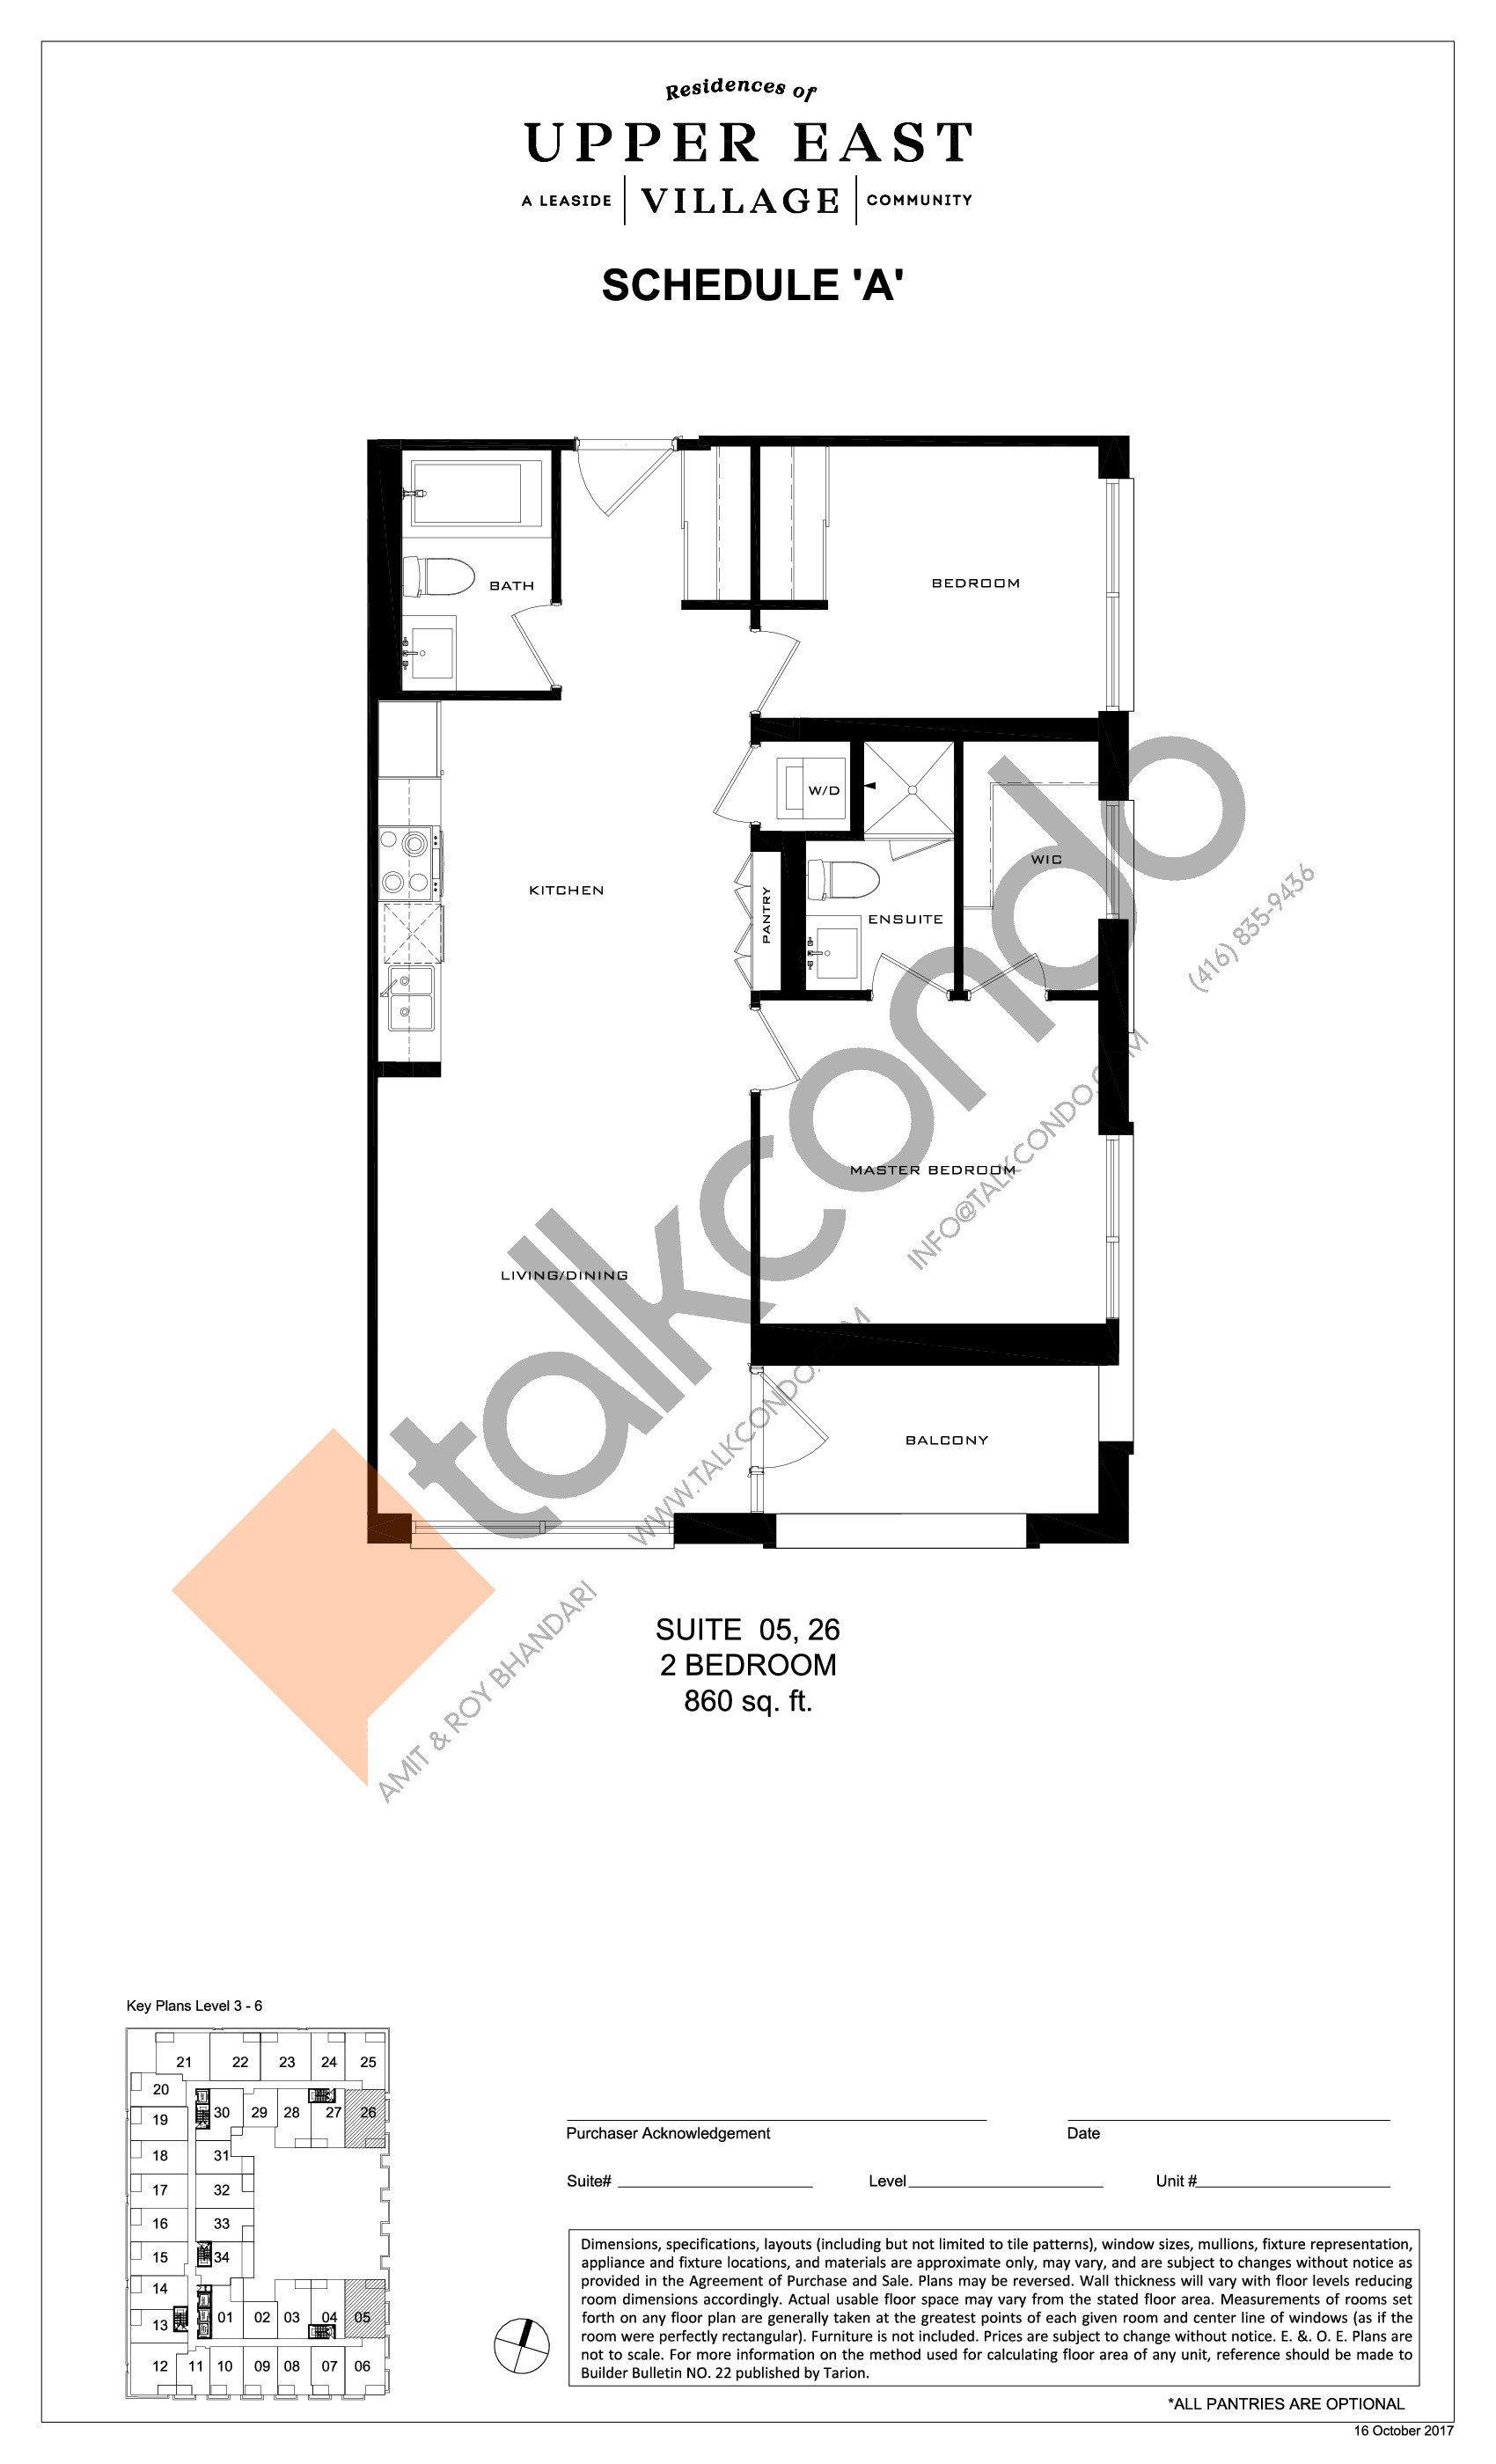 Suite 05, 26 Floor Plan at Upper East Village Condos - 860 sq.ft